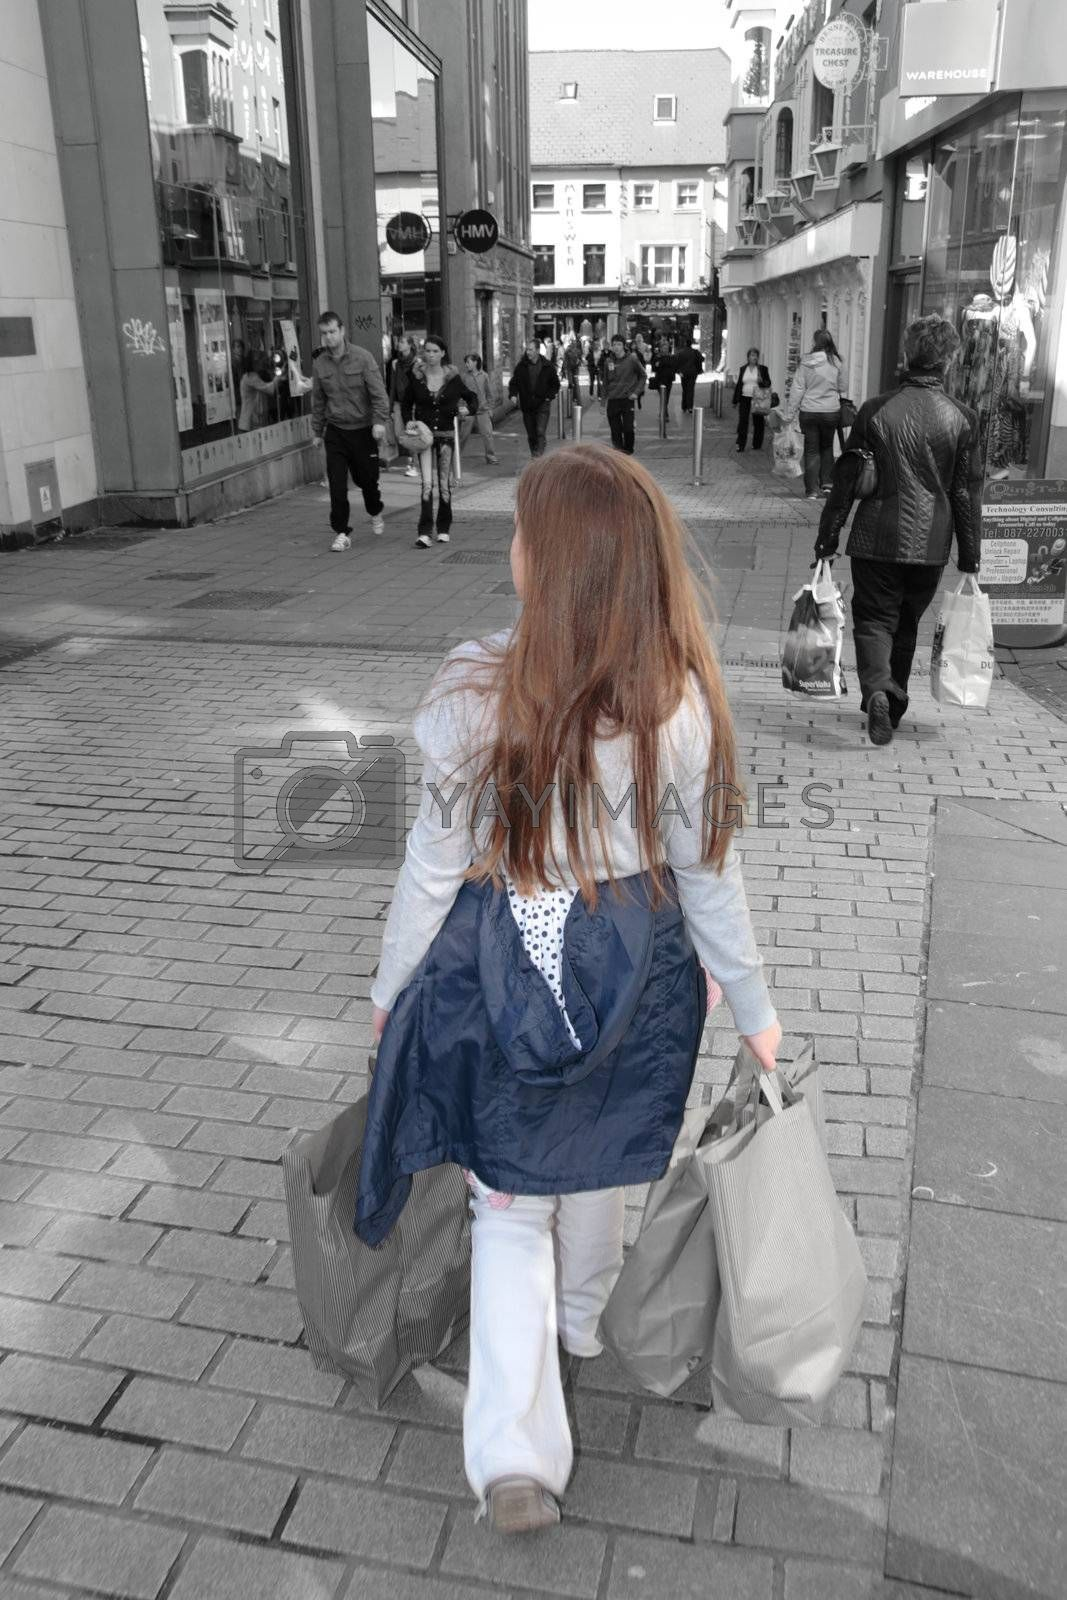 a young girl with shopping bags on a high street